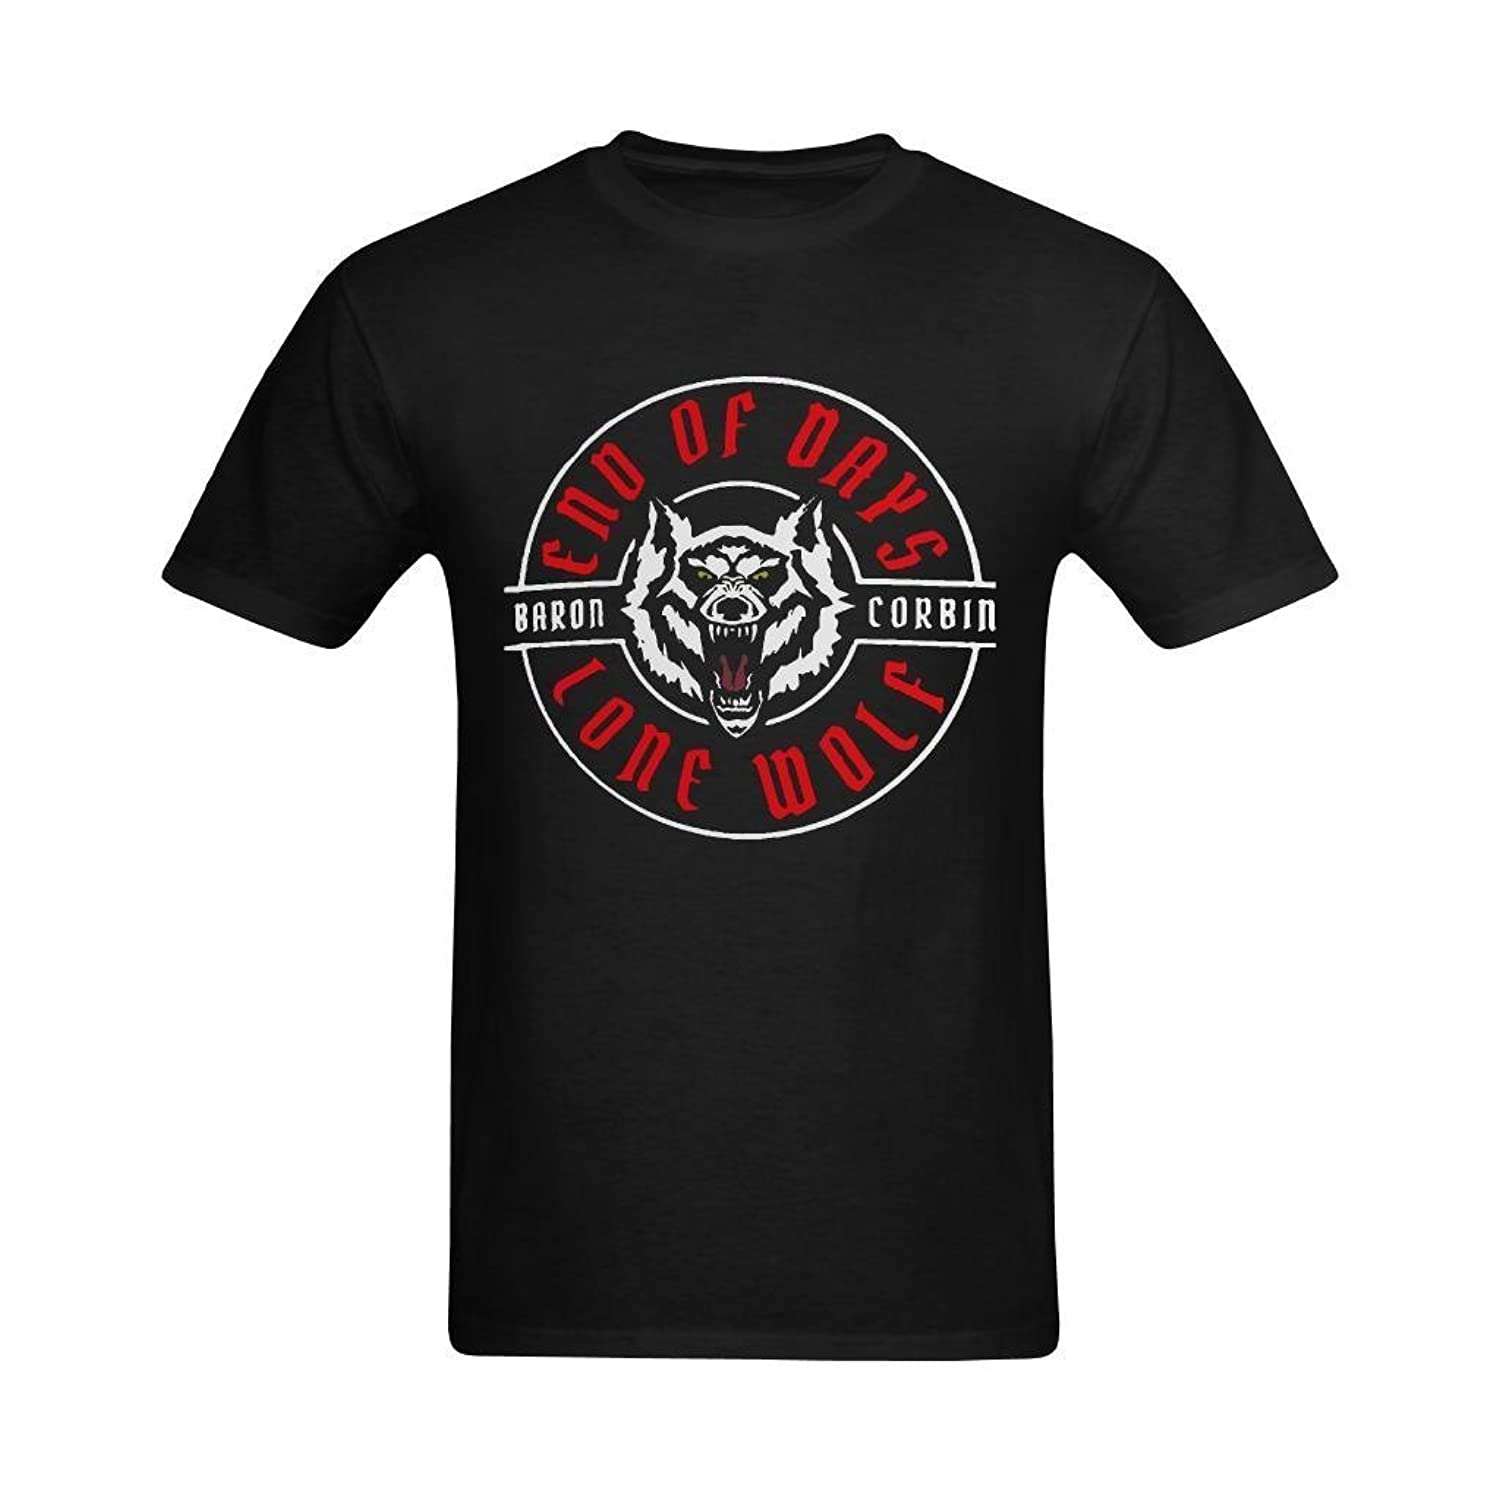 Baron Corbin Merchandise: Official Source to Buy Online| WWE